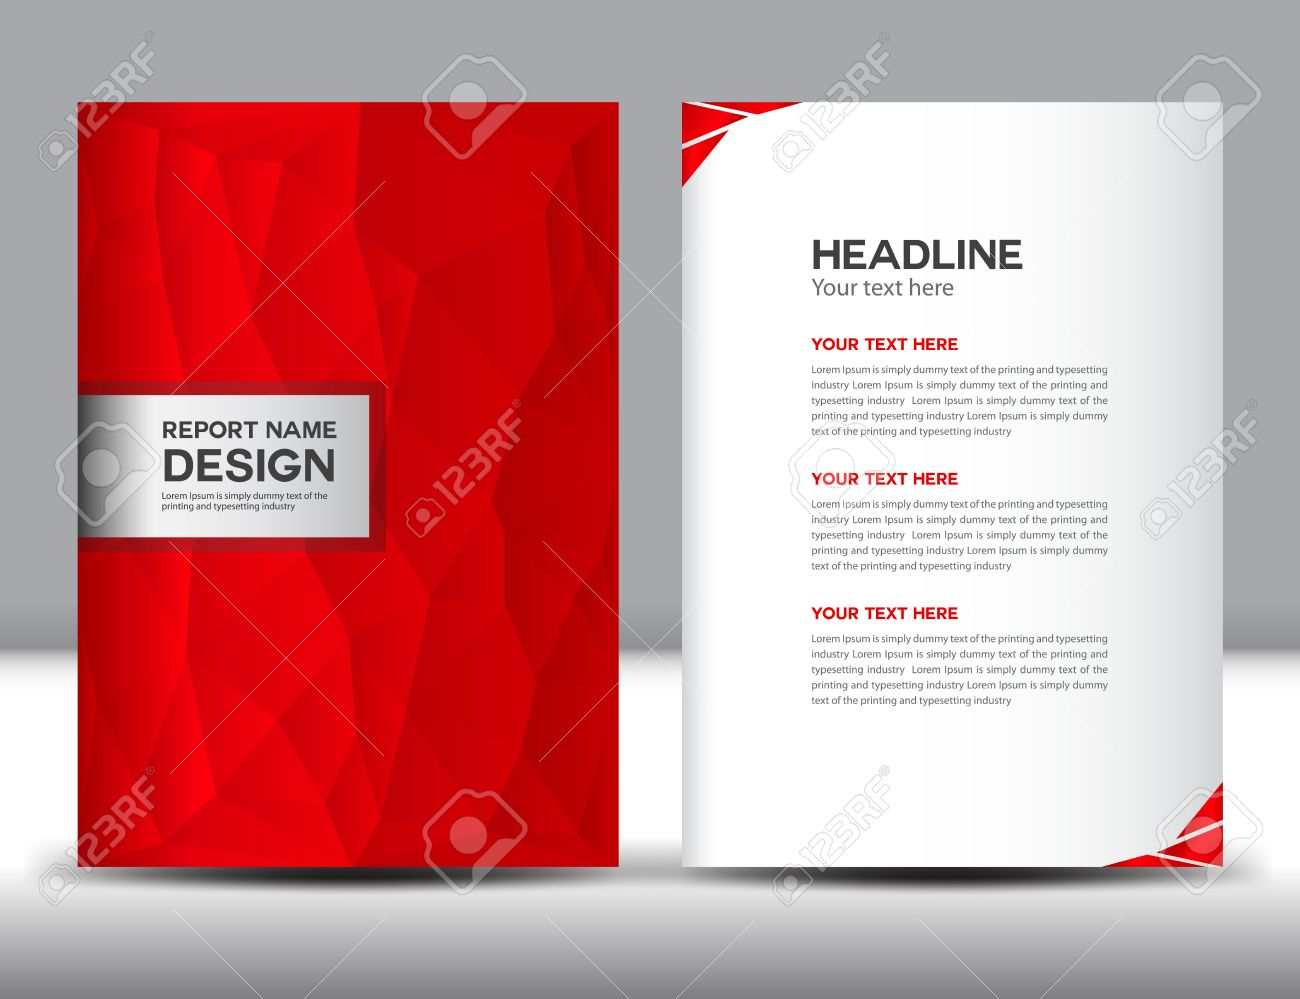 Red Cover Annual Report Template,polygon Background,brochure Design,cover  Template,design  Annual Report Template Design